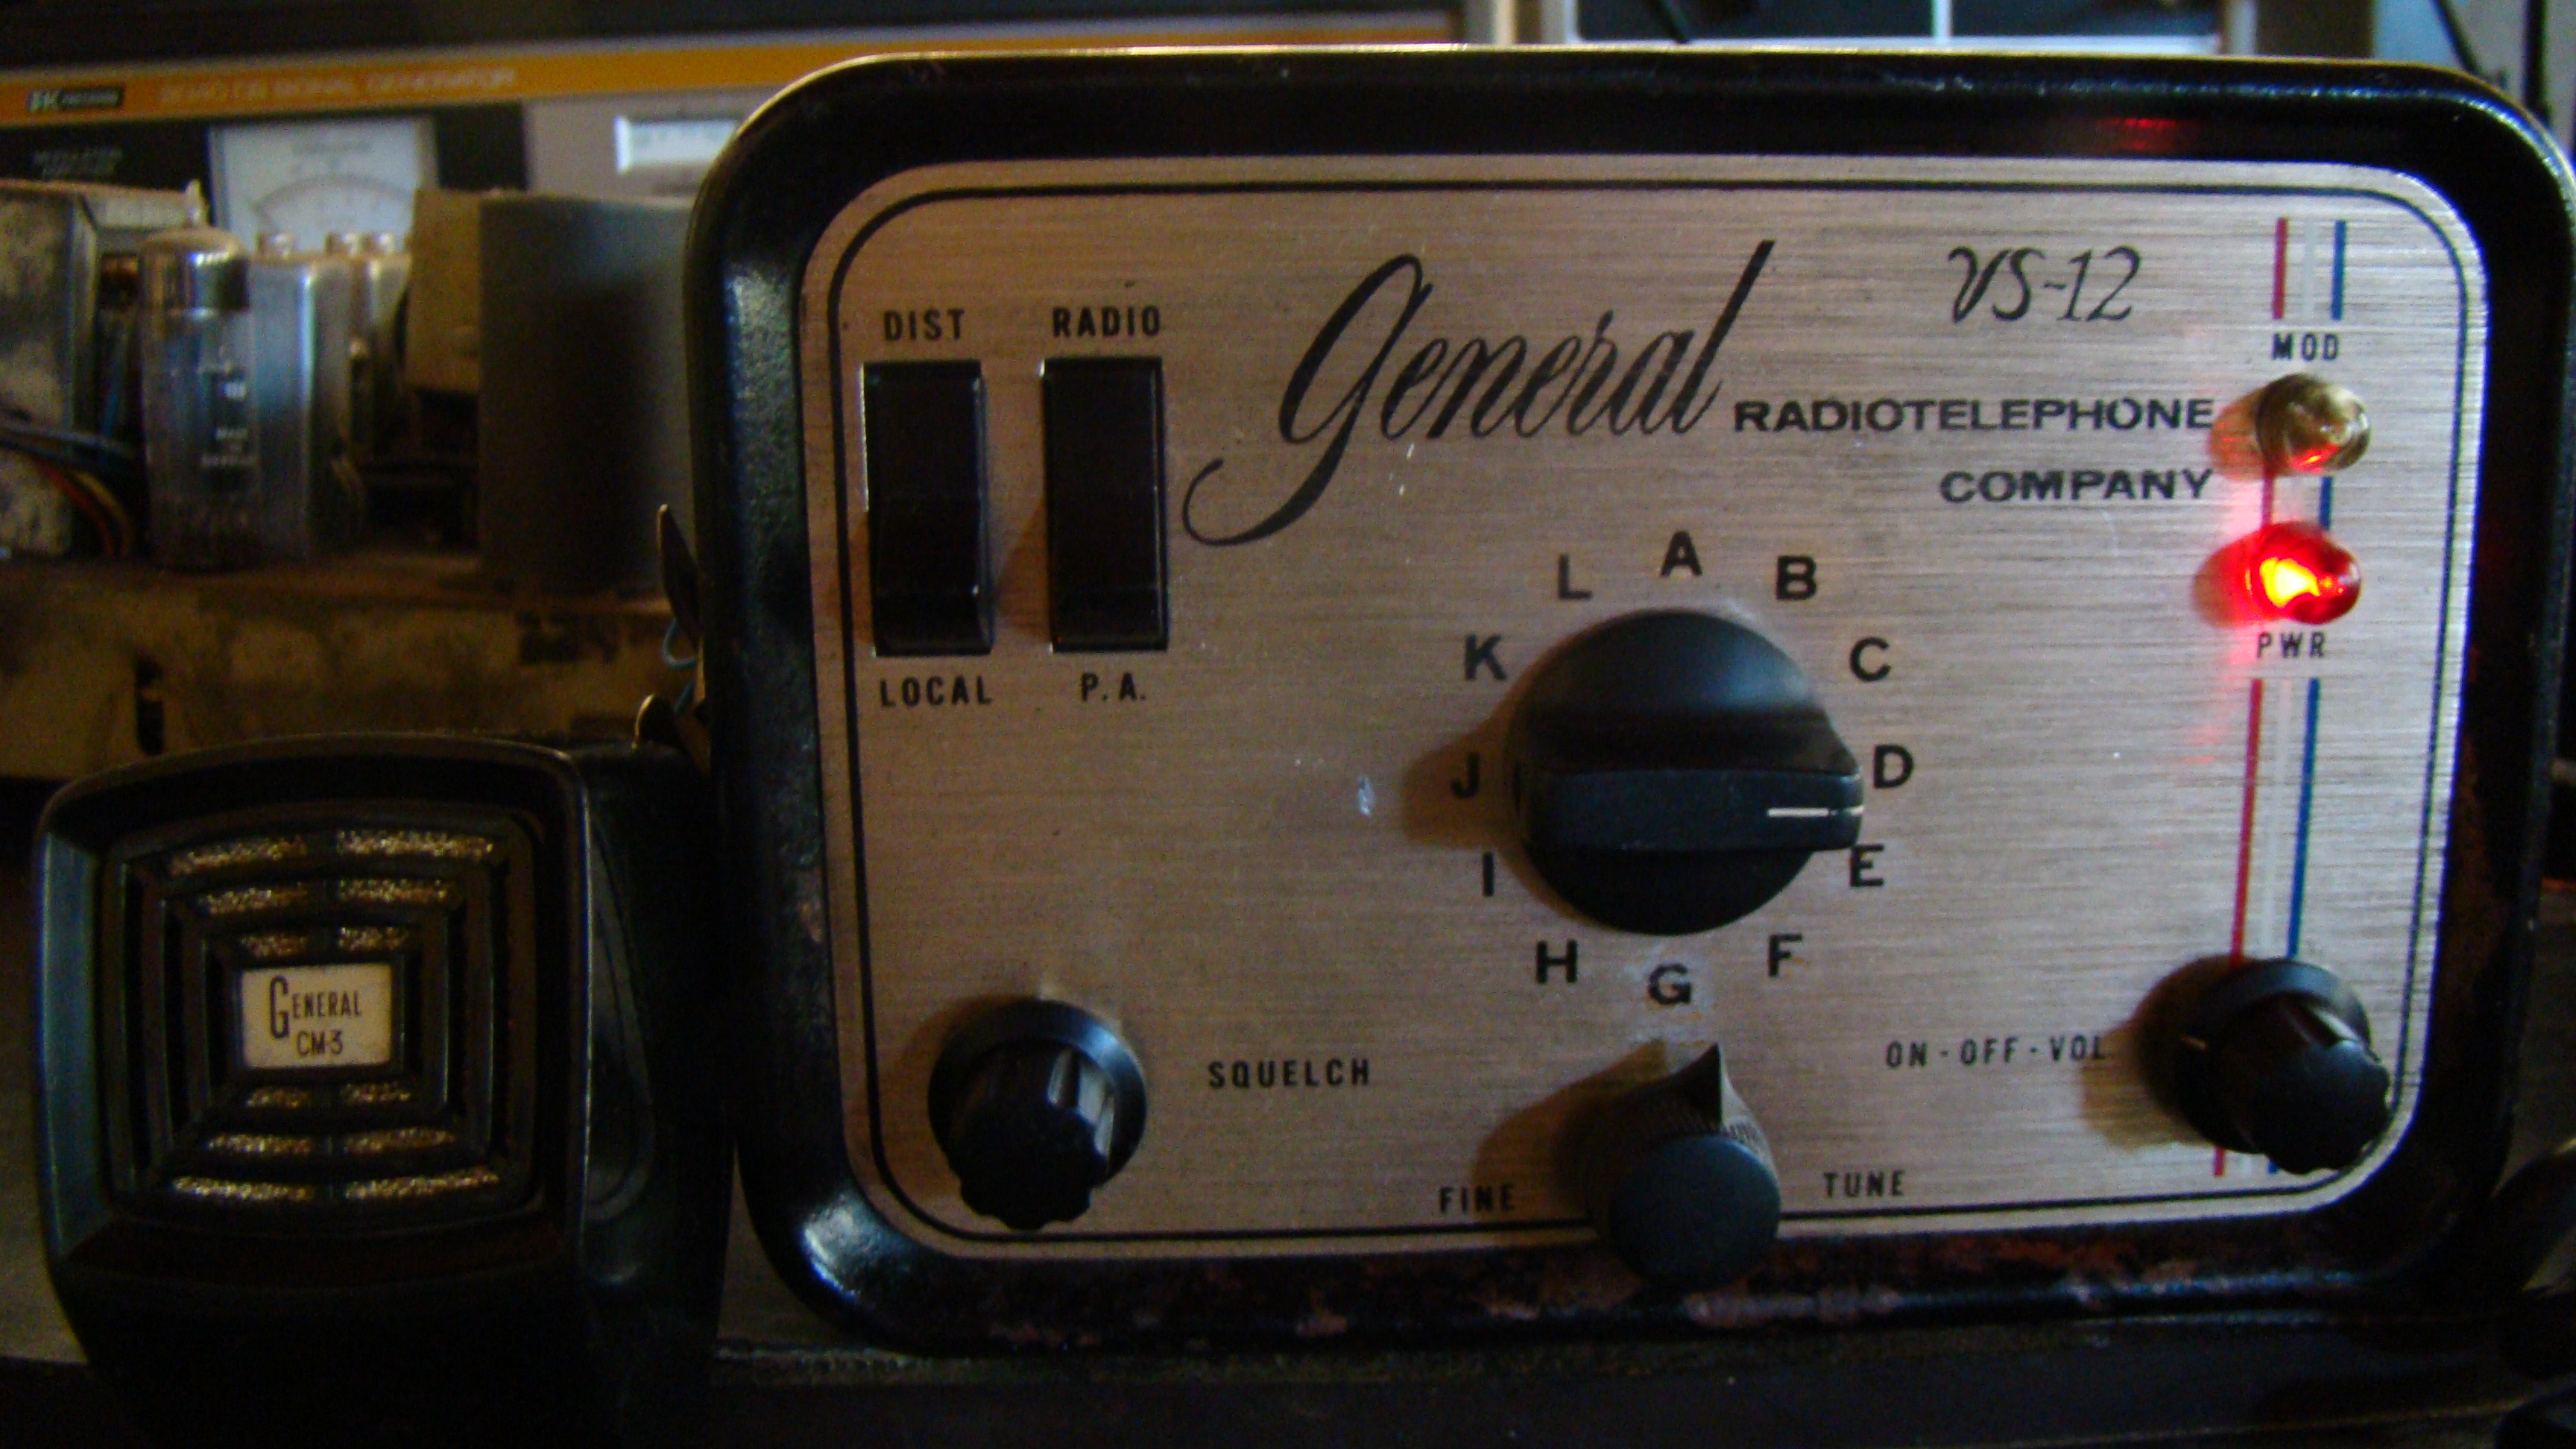 General Radiotelephone VS-12 - from the collection of Paul SWL# 45